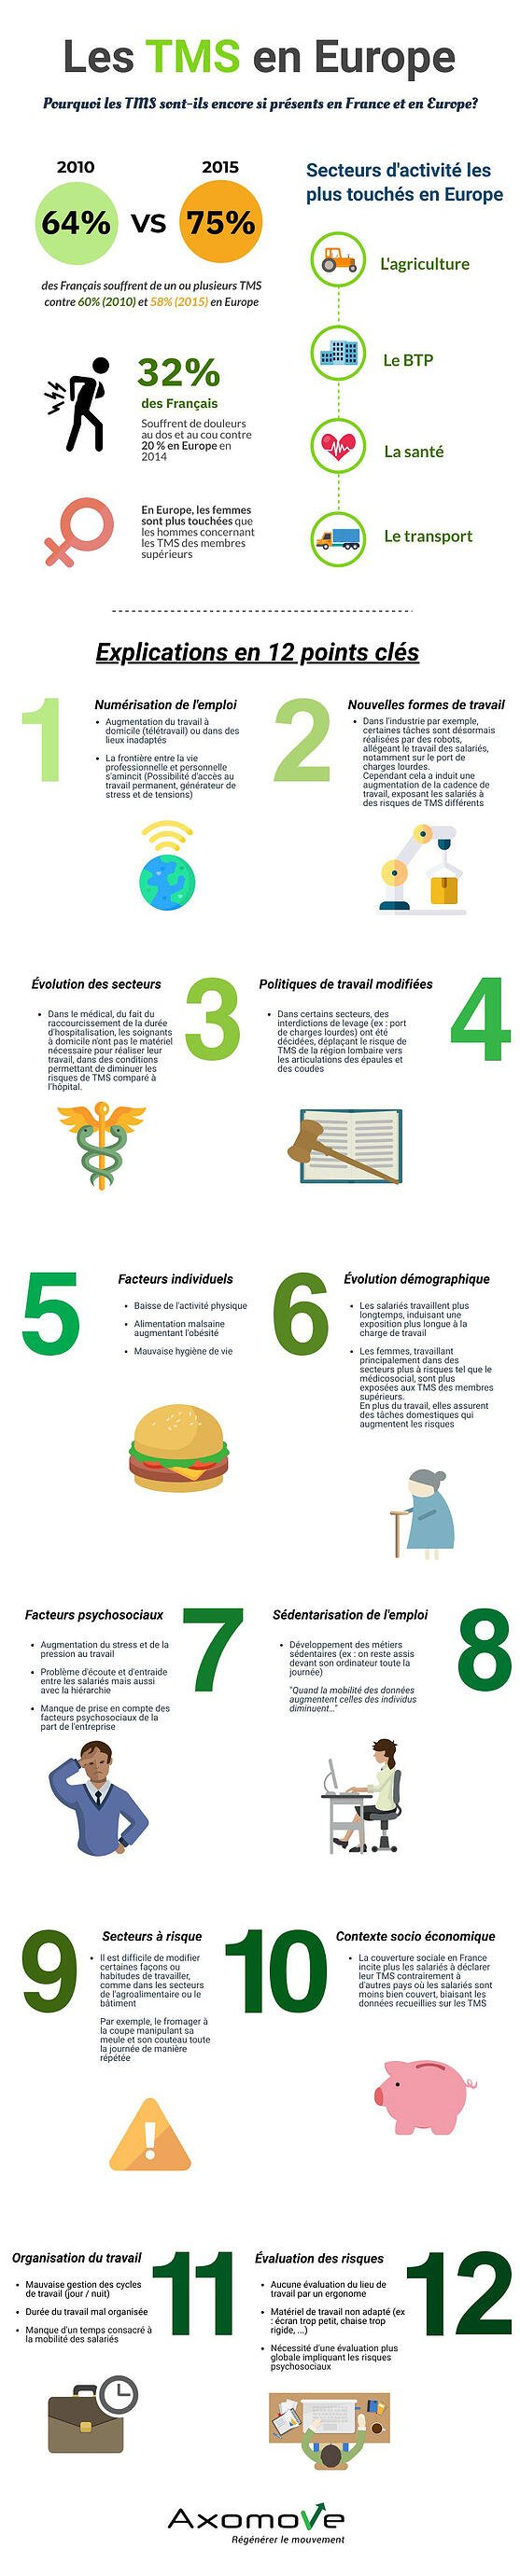 Infographie-TMS-Europe